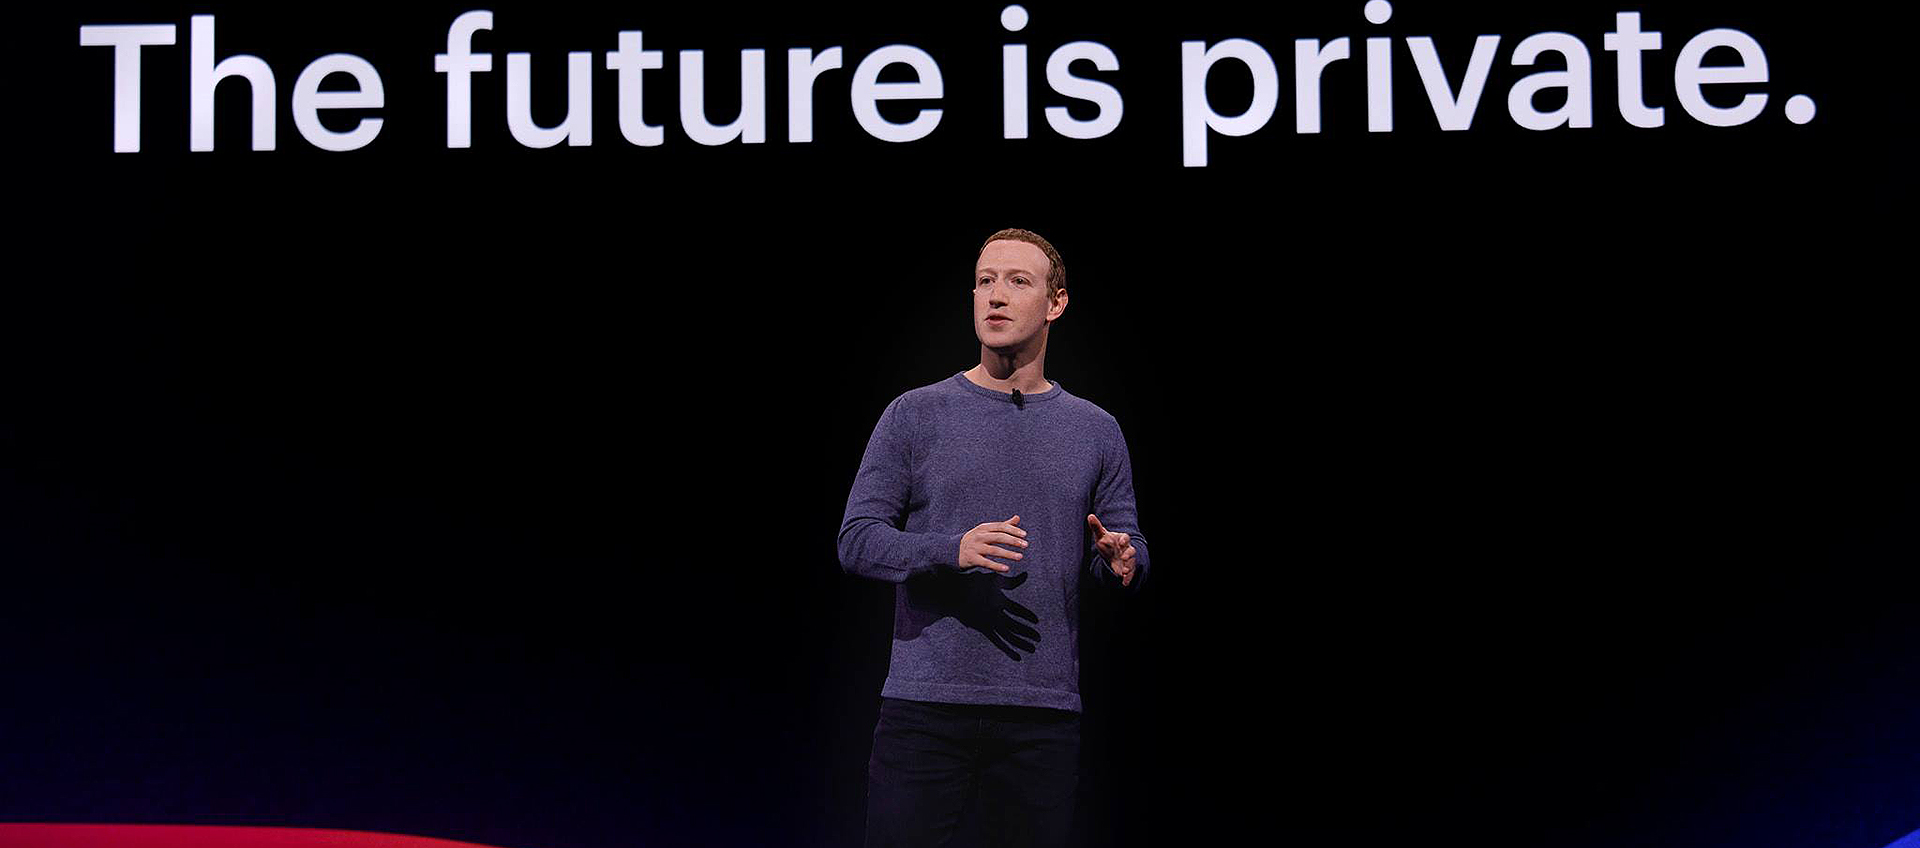 Mark Zuckerberg says Facebook will focus on privacy.